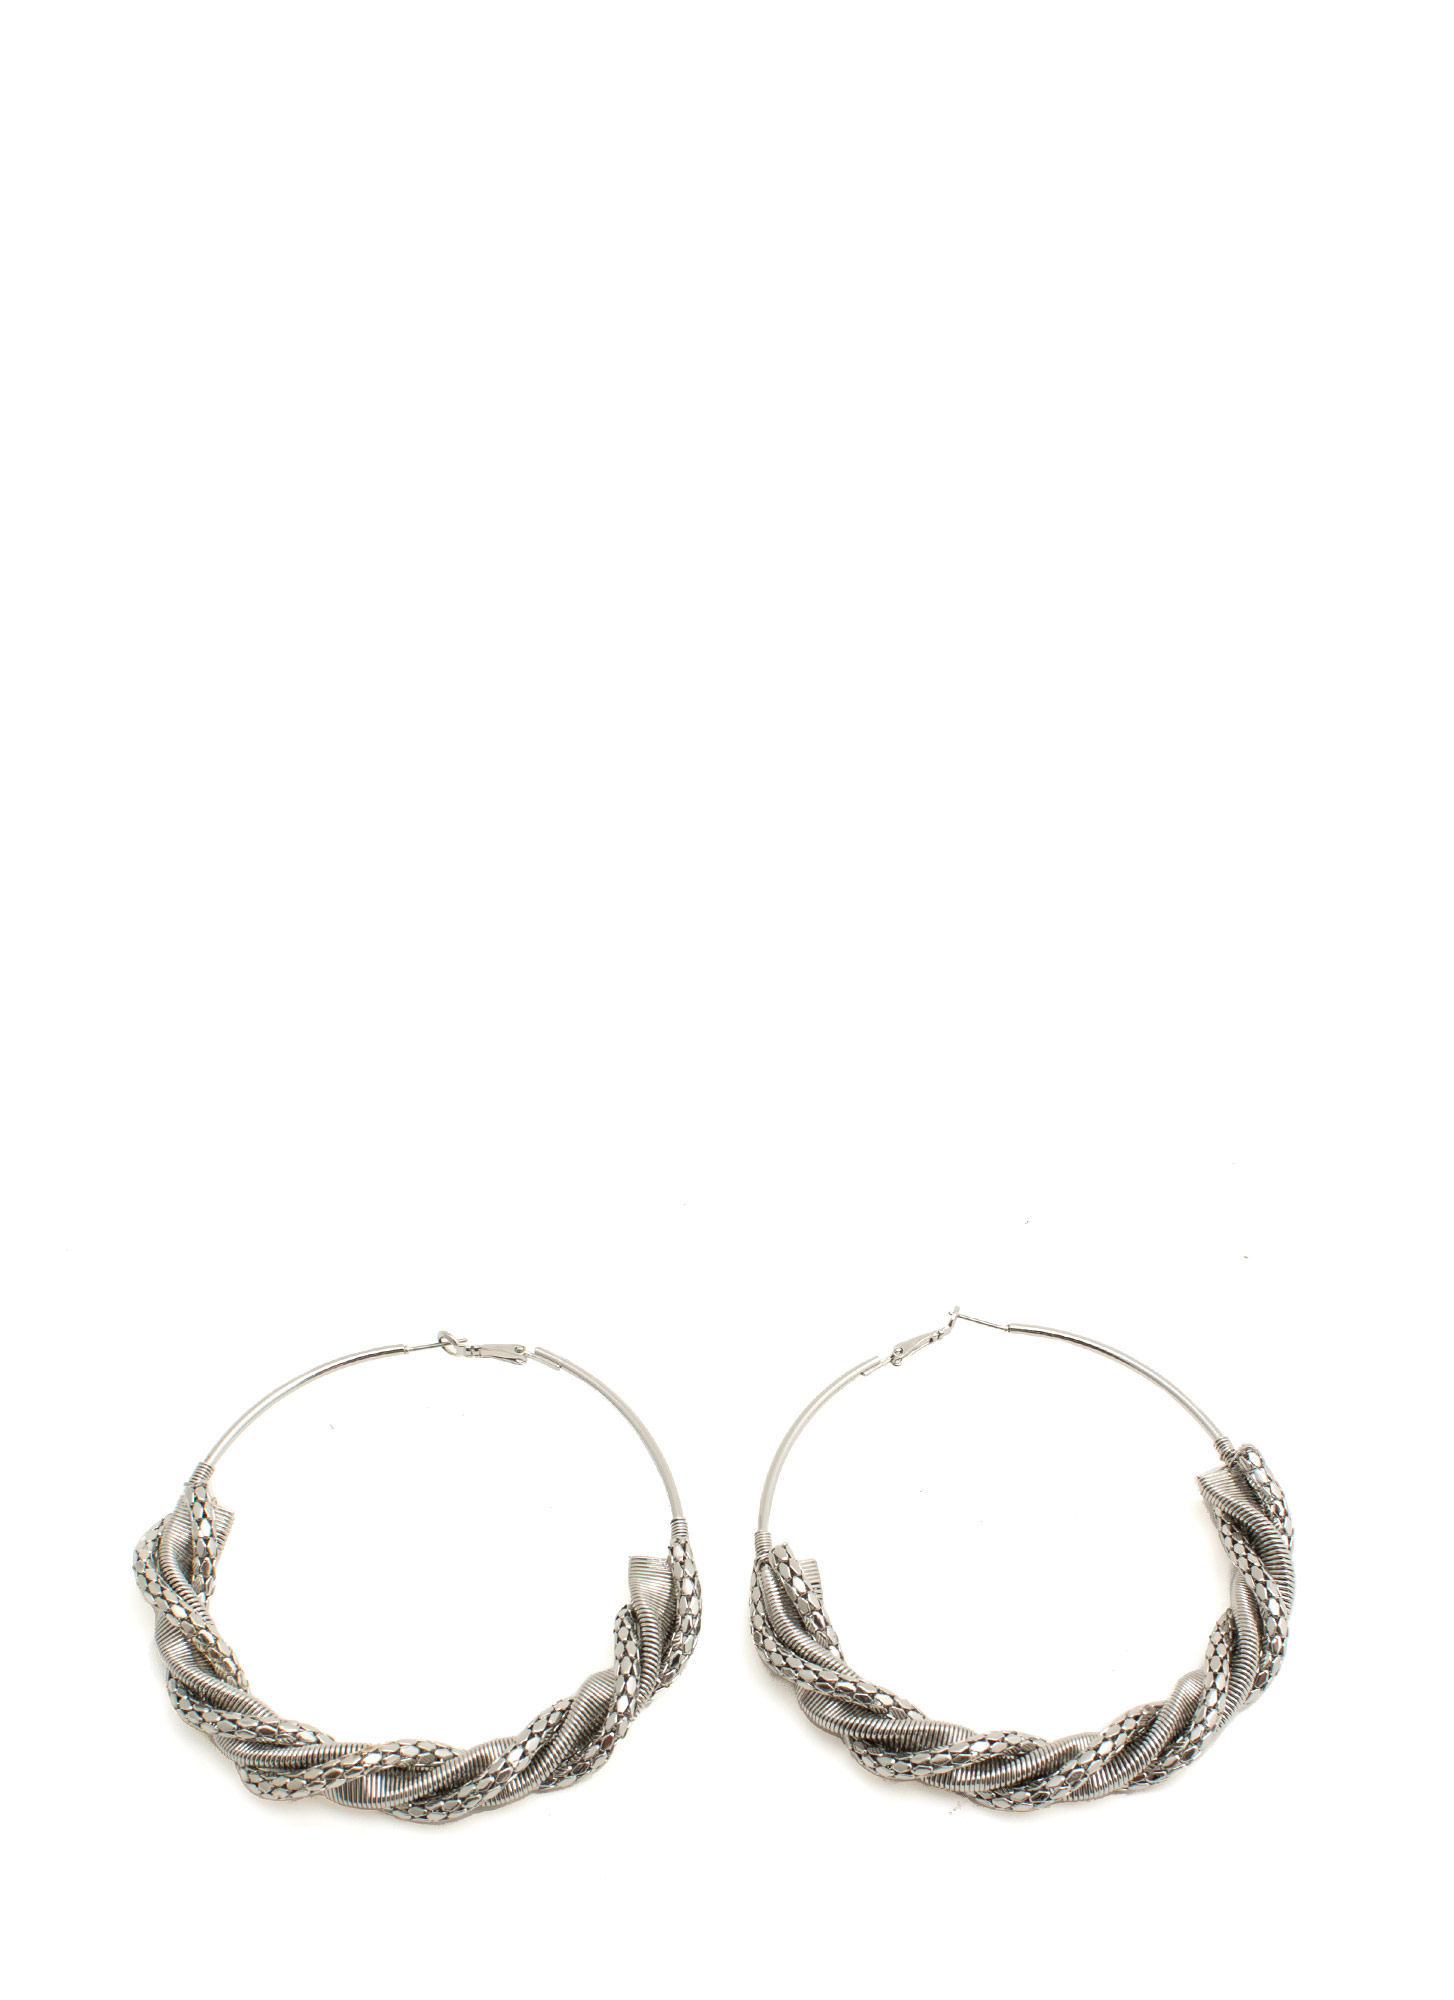 Oversized Twisted Chain Hoop Earrings SILVER